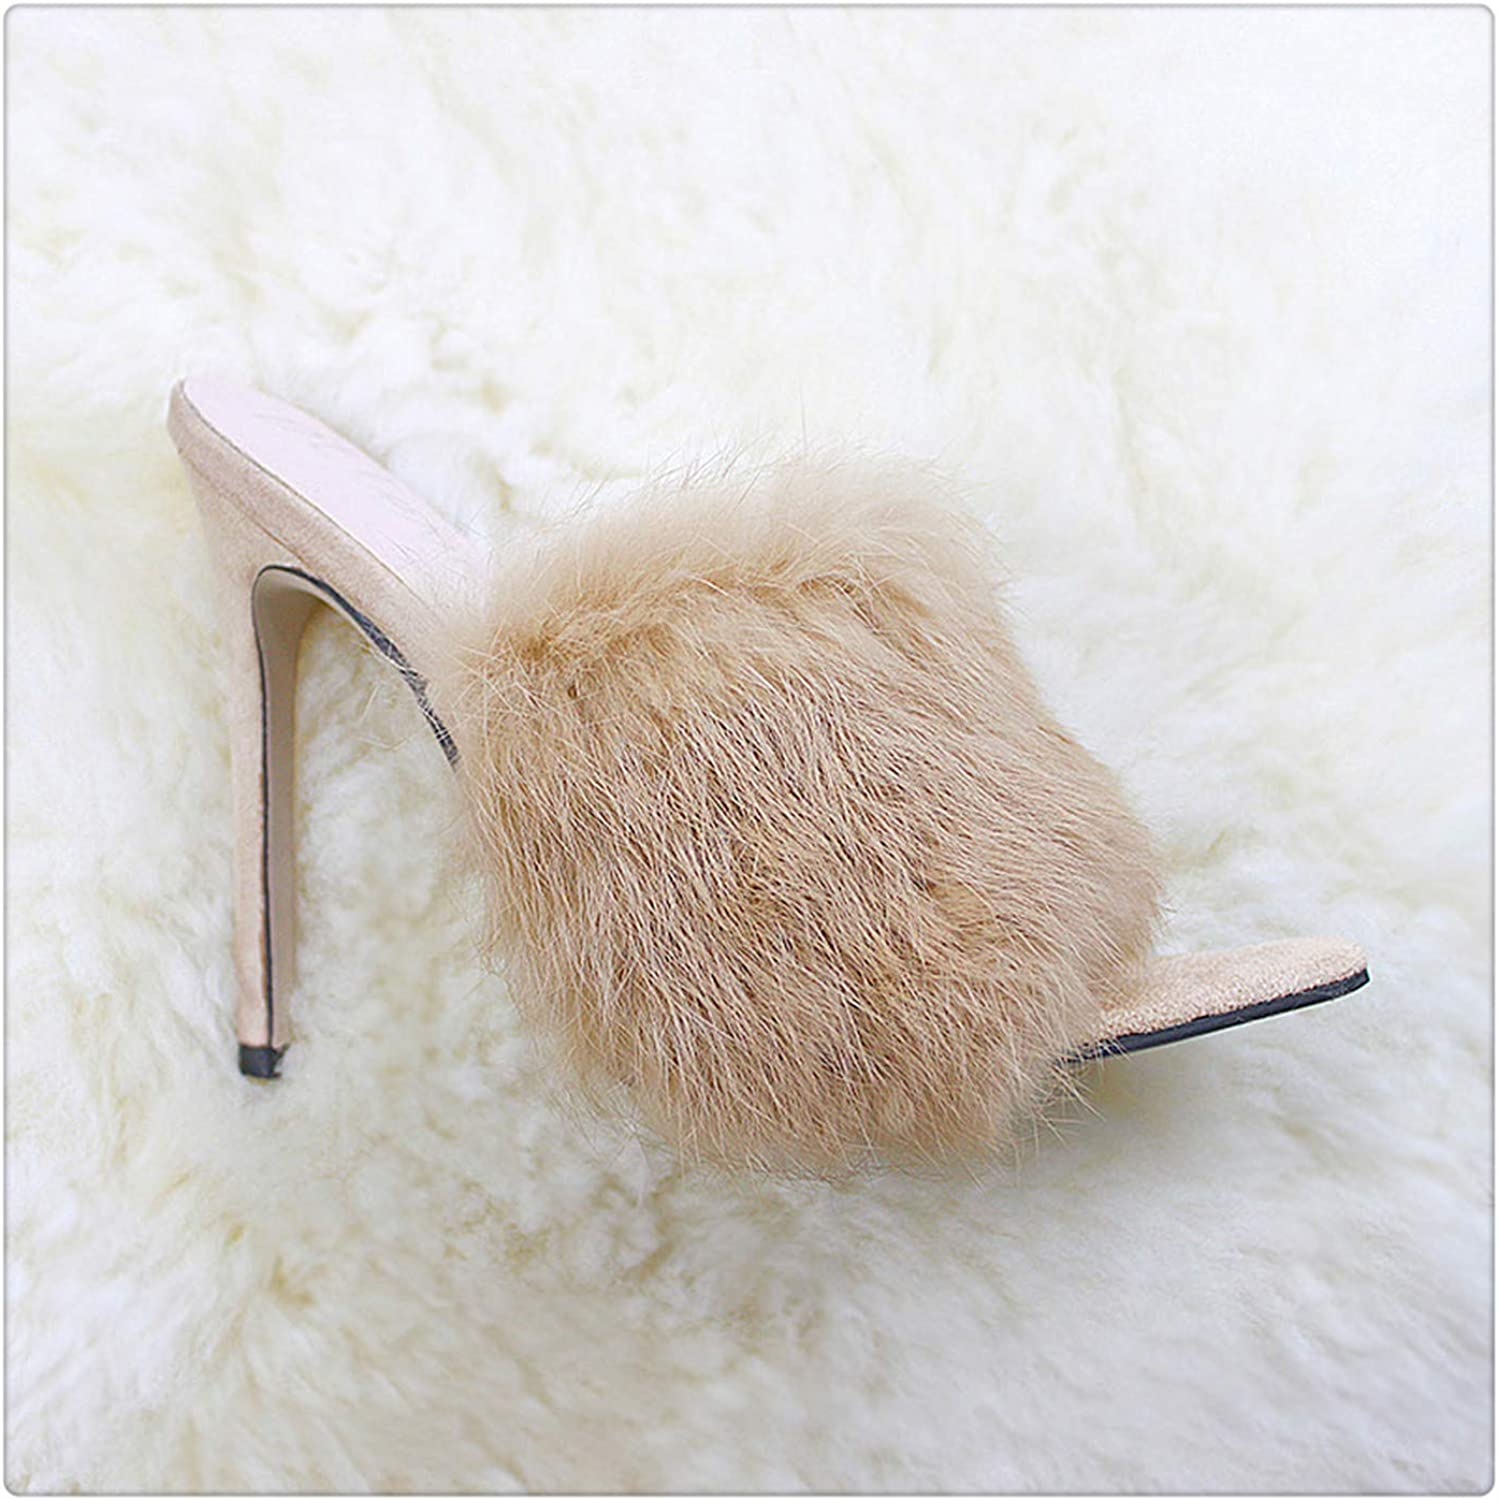 HANGGE& 2019 Fur Women's Pumps Heels shoes High Heel Slippers Women Big Large Size Pointed Toe Ladies Female Slides Fashion Woman shoes Brown 9.5